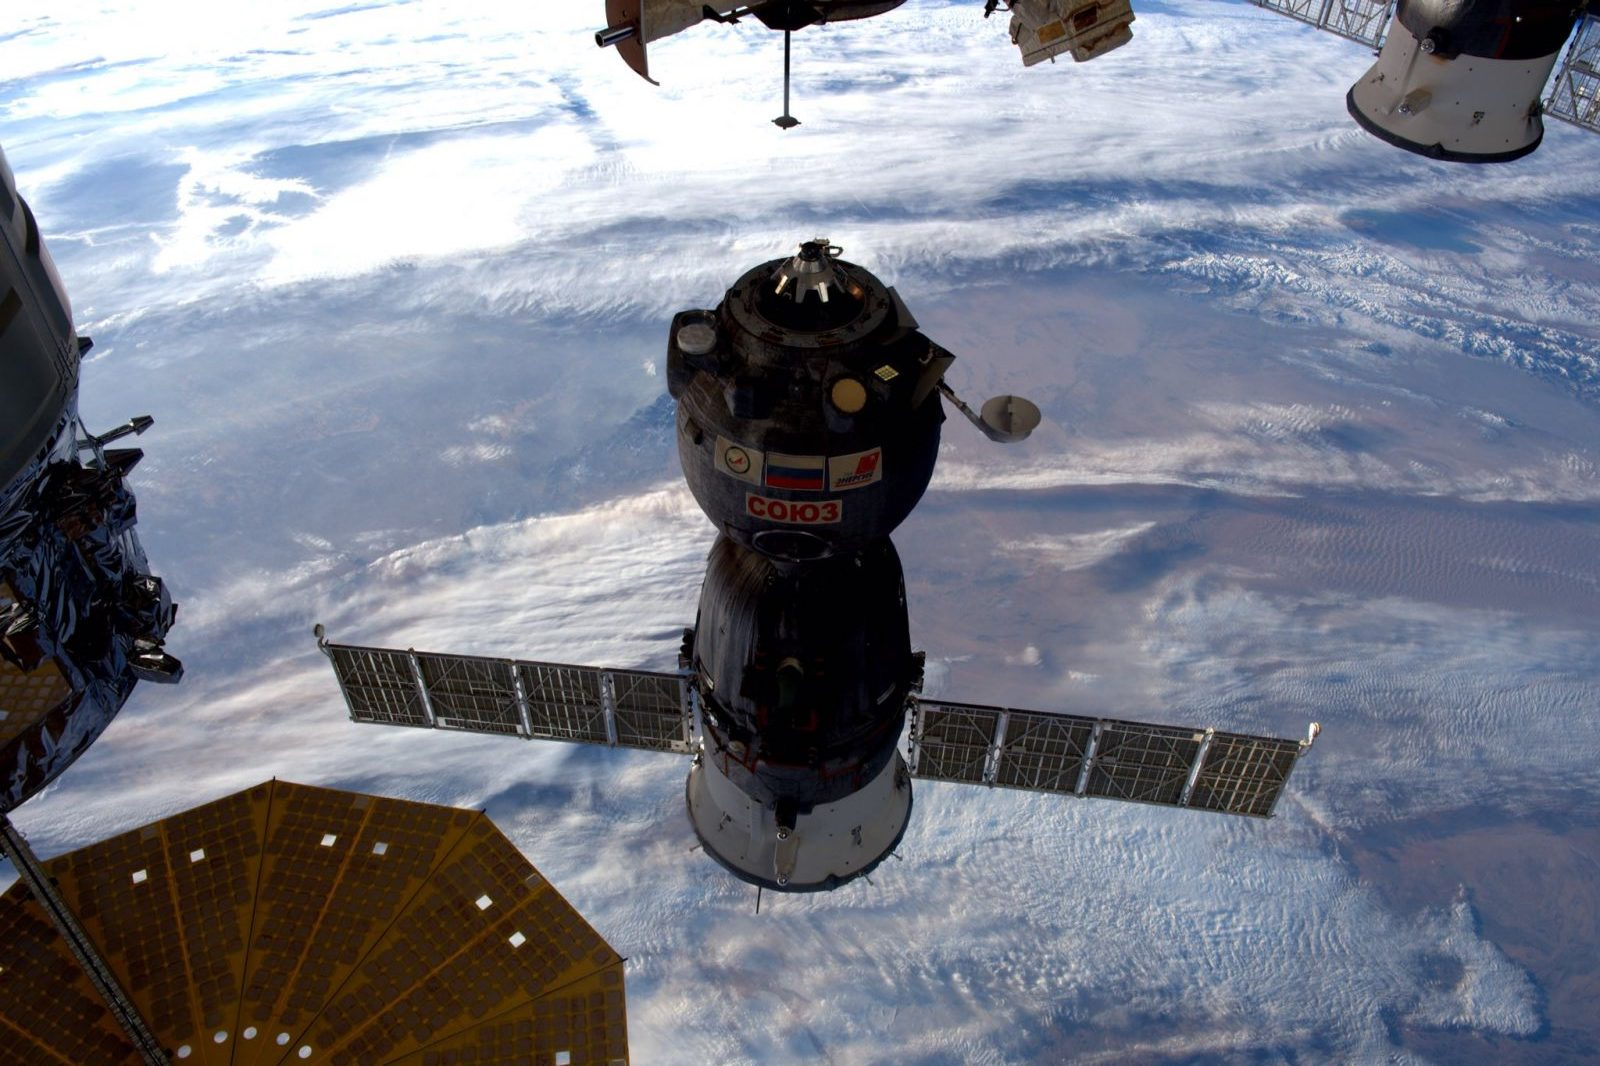 Soyuz MS-02 undocking from ISS. Photo Credit: NASA